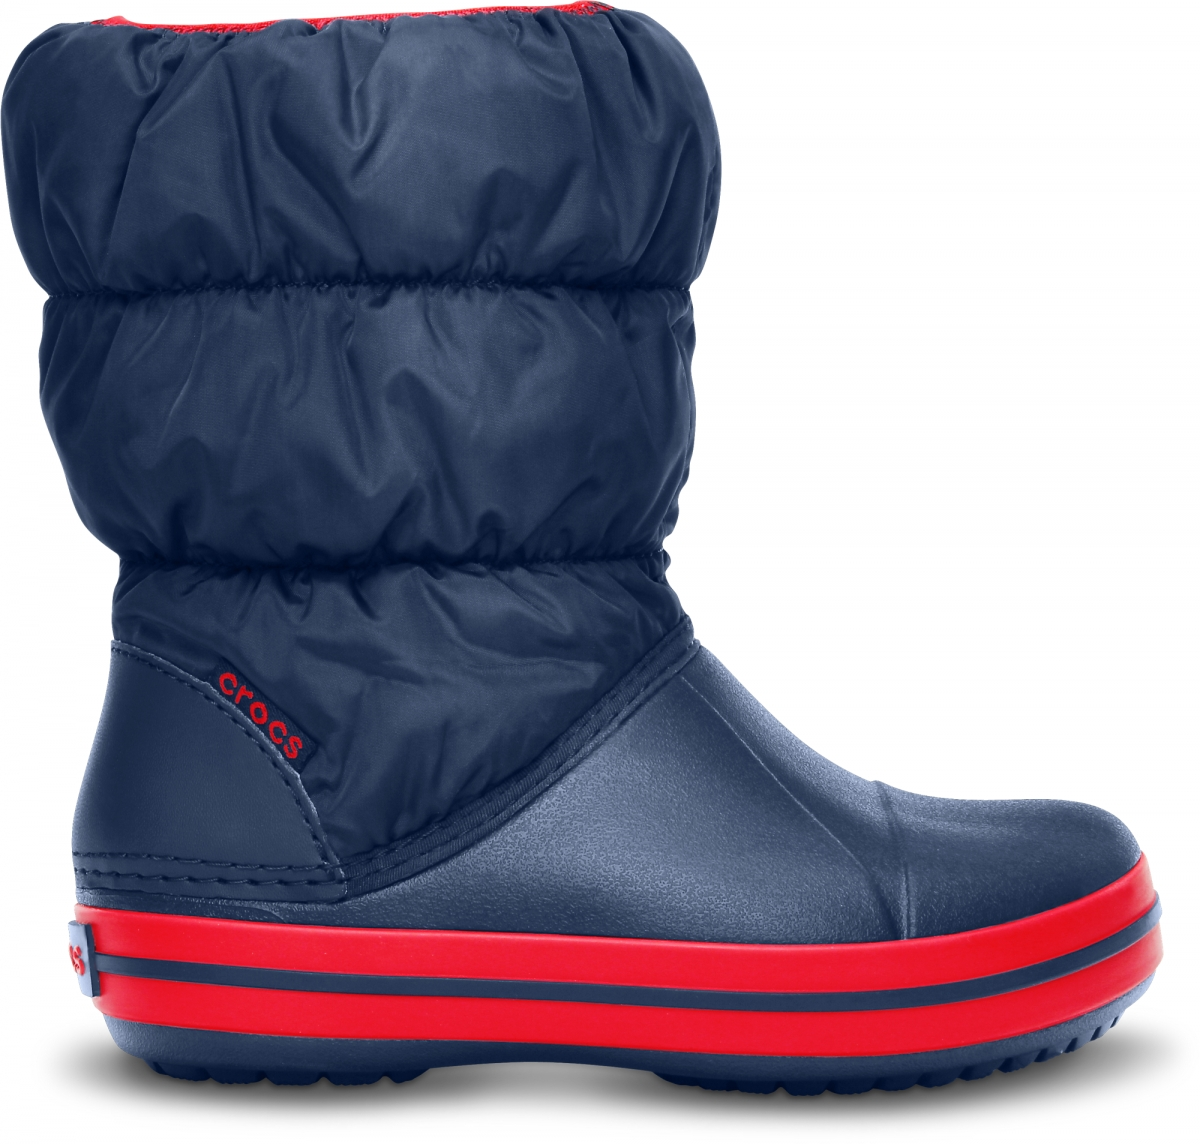 Crocs Winter Puff Boot Kids - Navy/Red, C9 (25-26)